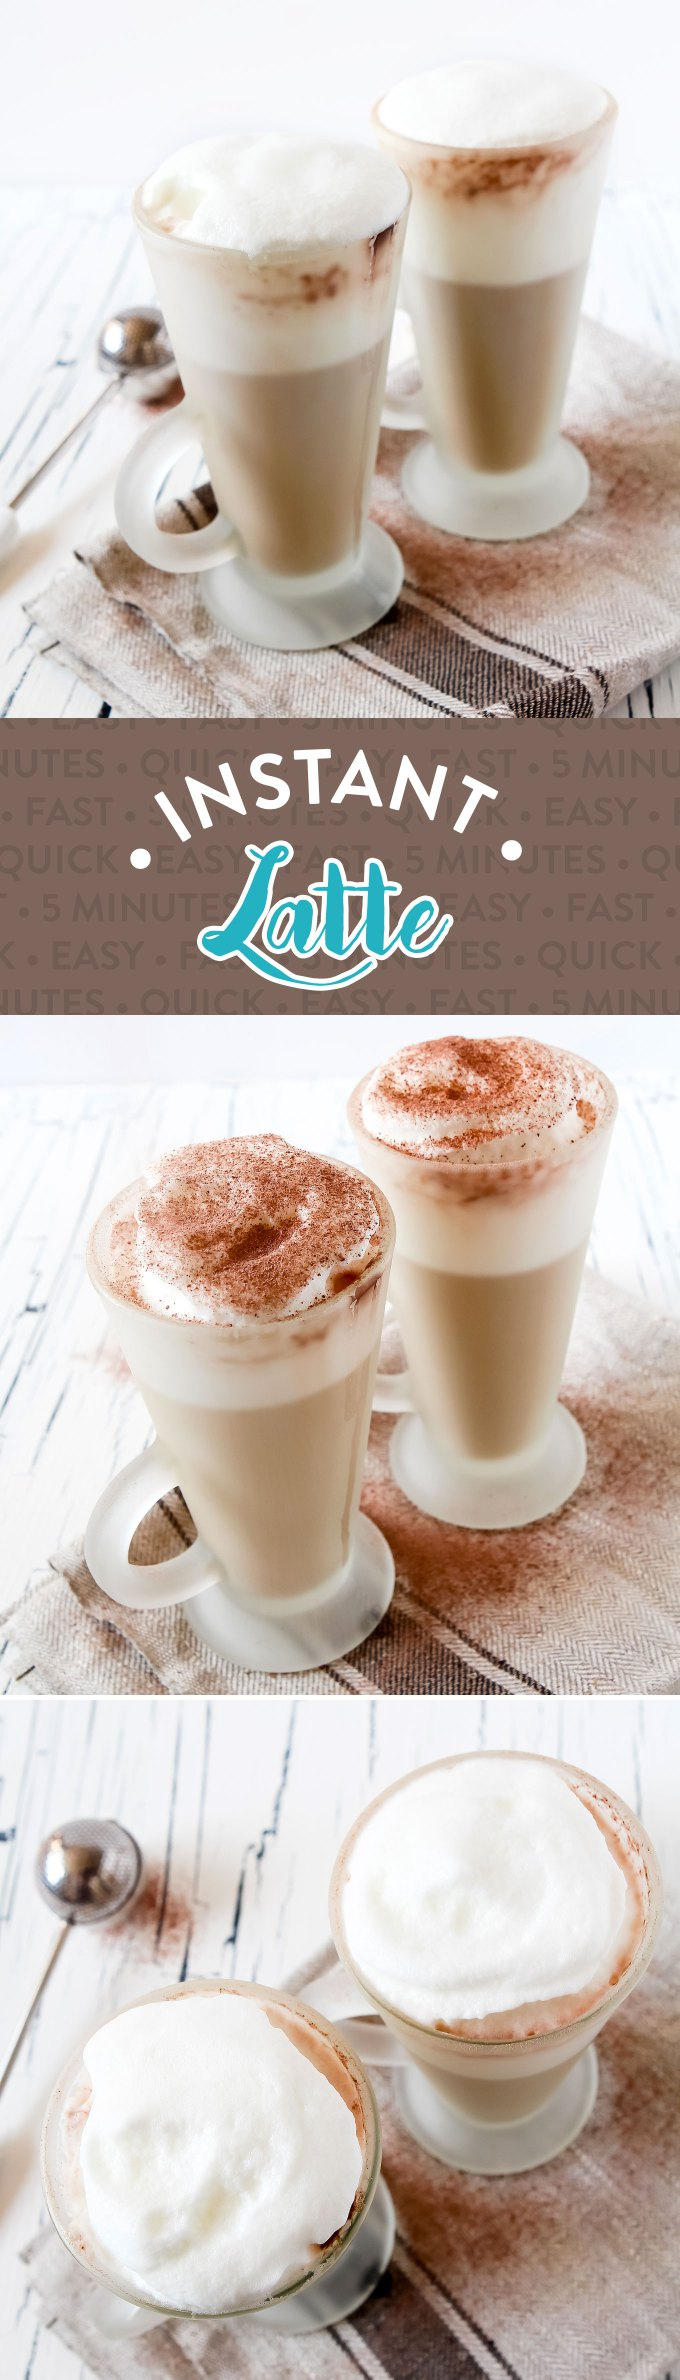 Coffee Shop Style Homemade Instant Latte Recipe by Sweet2EatBaking.com   No need to nip to the shop for your latte fix! This instant latte is made in minutes with 2-3 ingredients, has a delicious flavour and foamed milk!